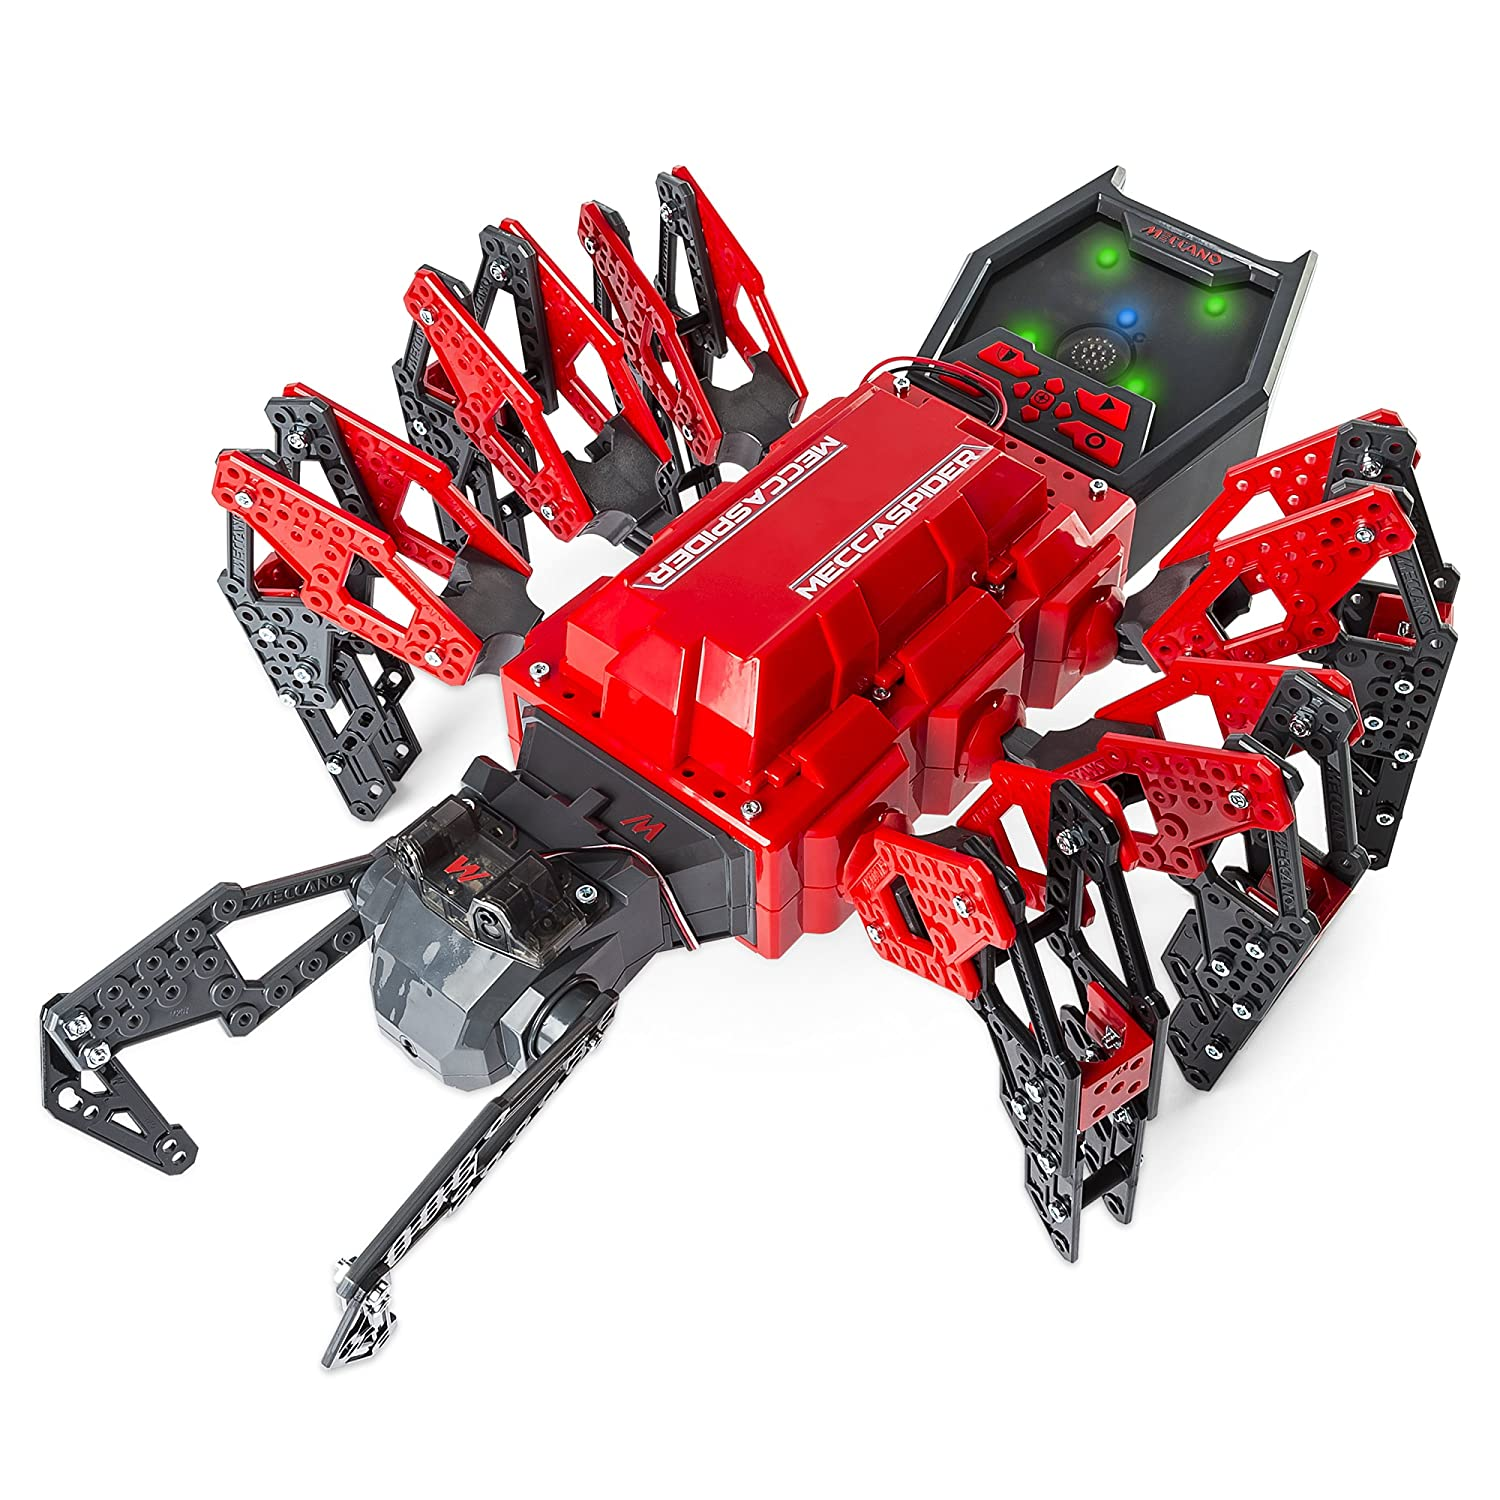 Meccano-Erector – MeccaSpider Robot Kit for Kids to Build, STEM Toy with Interactive Built-in Games and App